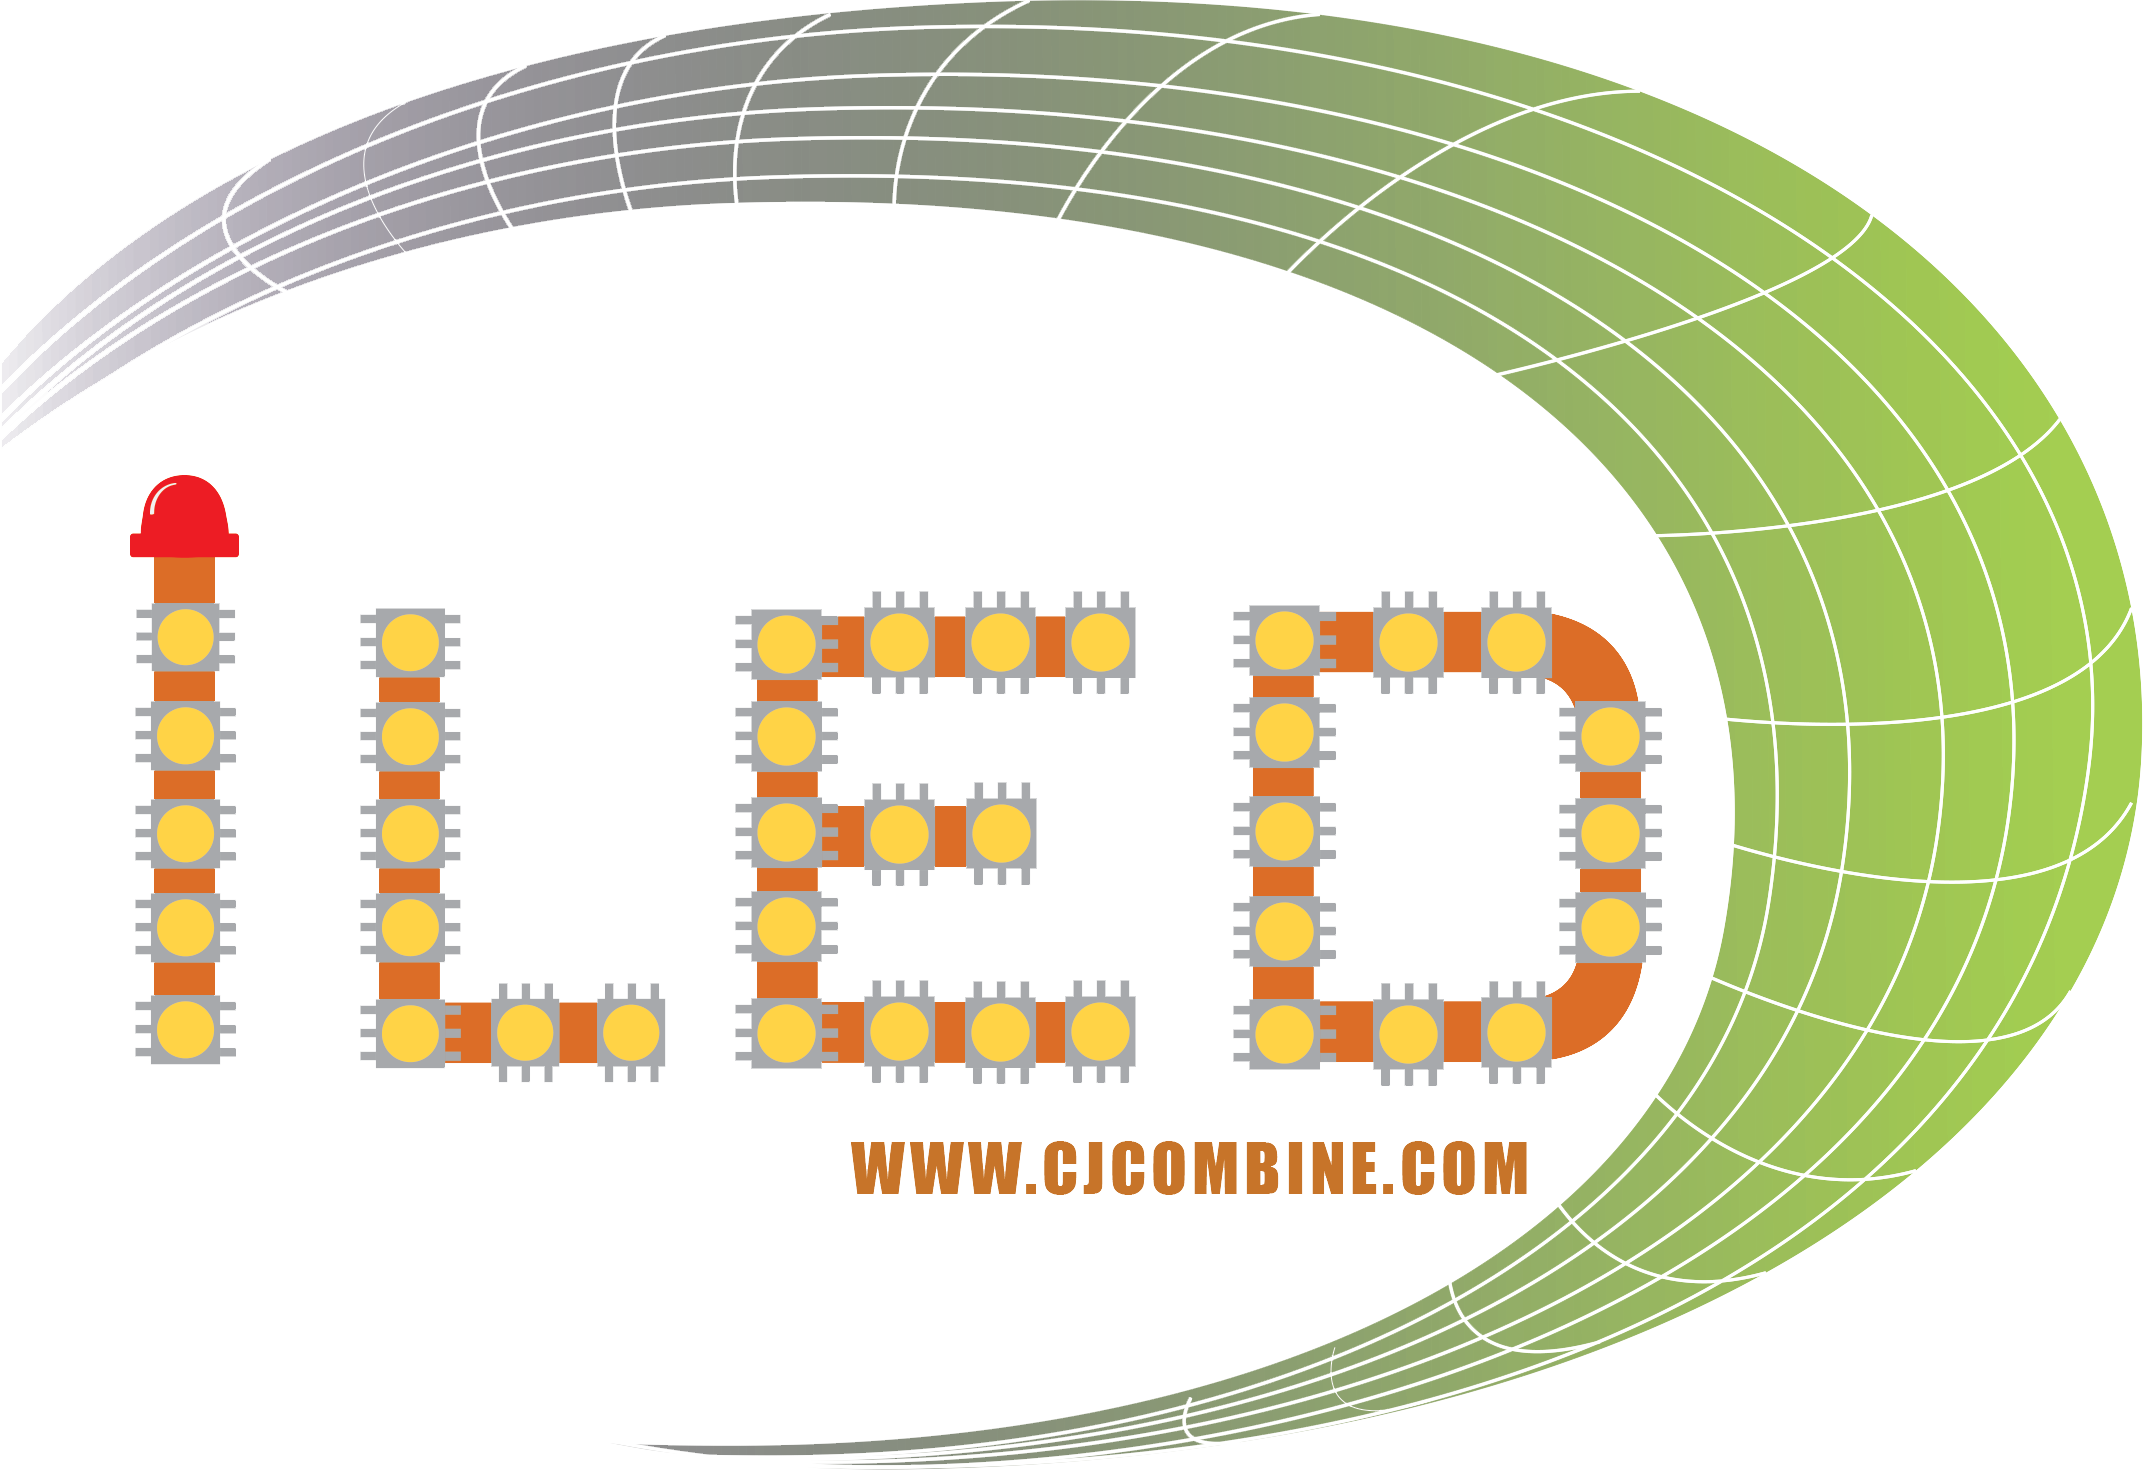 LED,T8,SOLAR CELL,Panel,Hi-bay,Highbay,Lowbay,Downlight,��ʹ�,�ʹ�մ�,�����Ѵ��ѧ�ҹ,�,�ʧ���ҧ